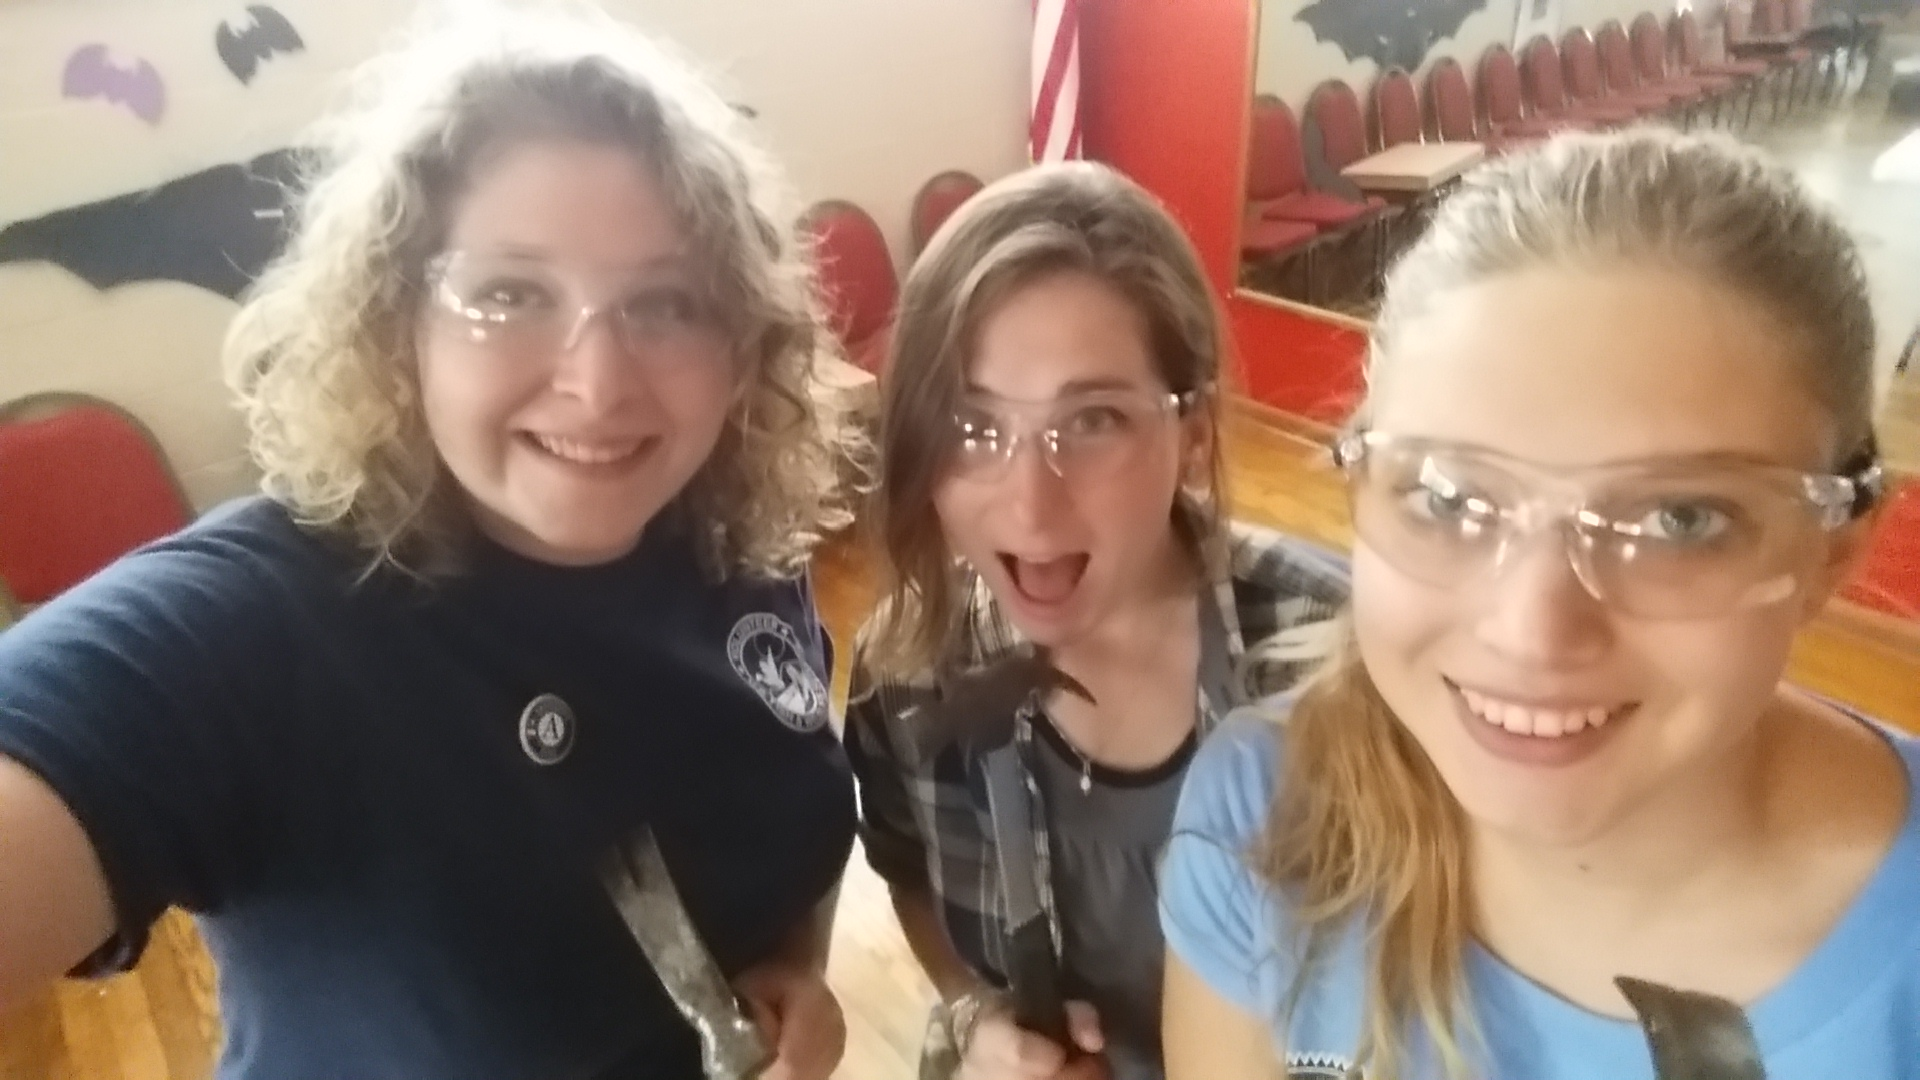 Peters (left) getting ready for day two of Bat Week - building bat boxes - with fellow AmeriCorps members, Lauren Merrill (middle) and Maddy Ball (right). Credit: Emily Peters/AmeriCorps